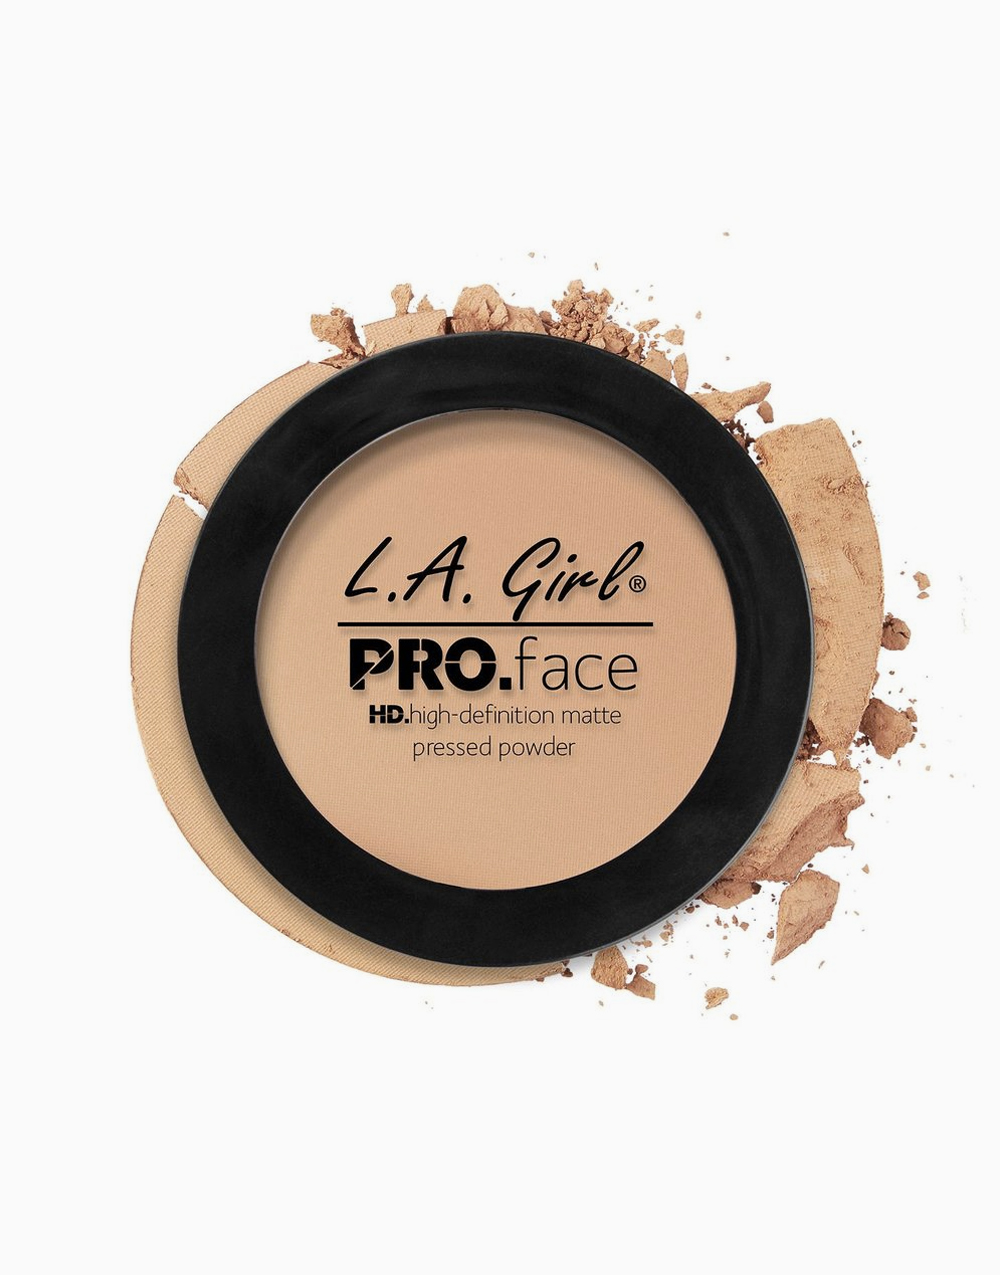 PRO Face Pressed Powder by L.A. Girl | Buff